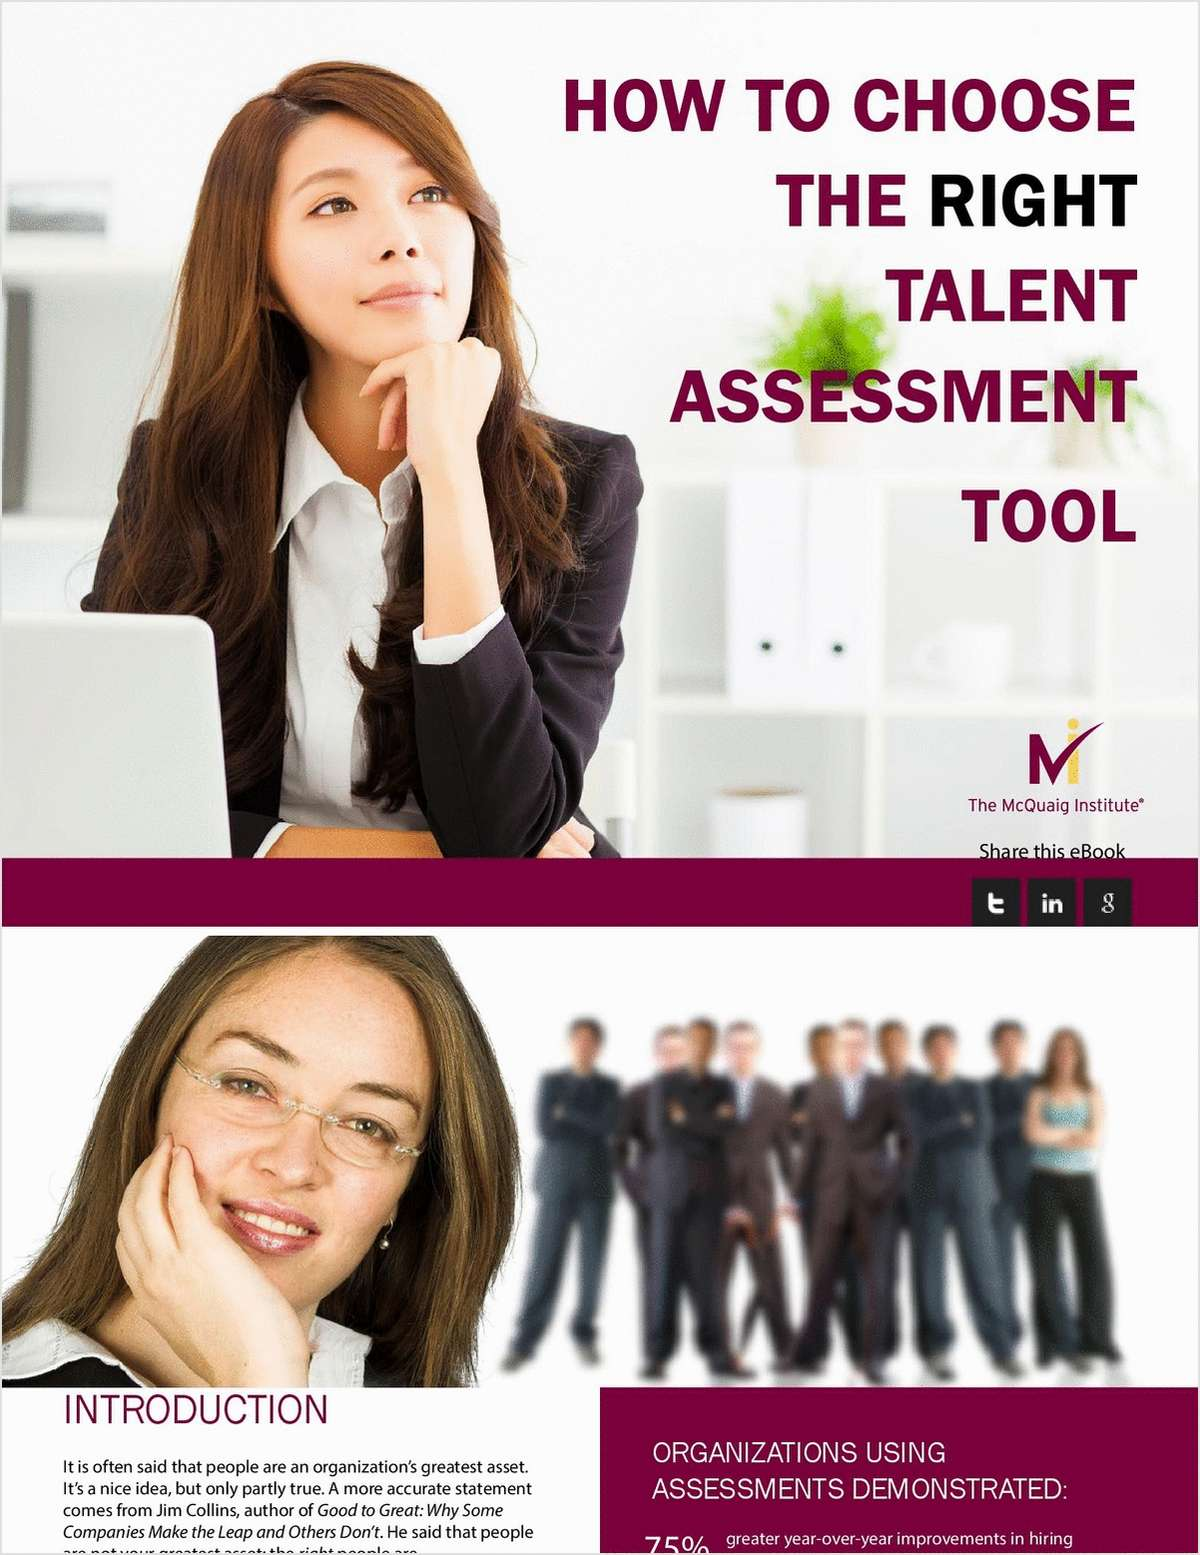 How to Choose the Right Talent Assessment Tool